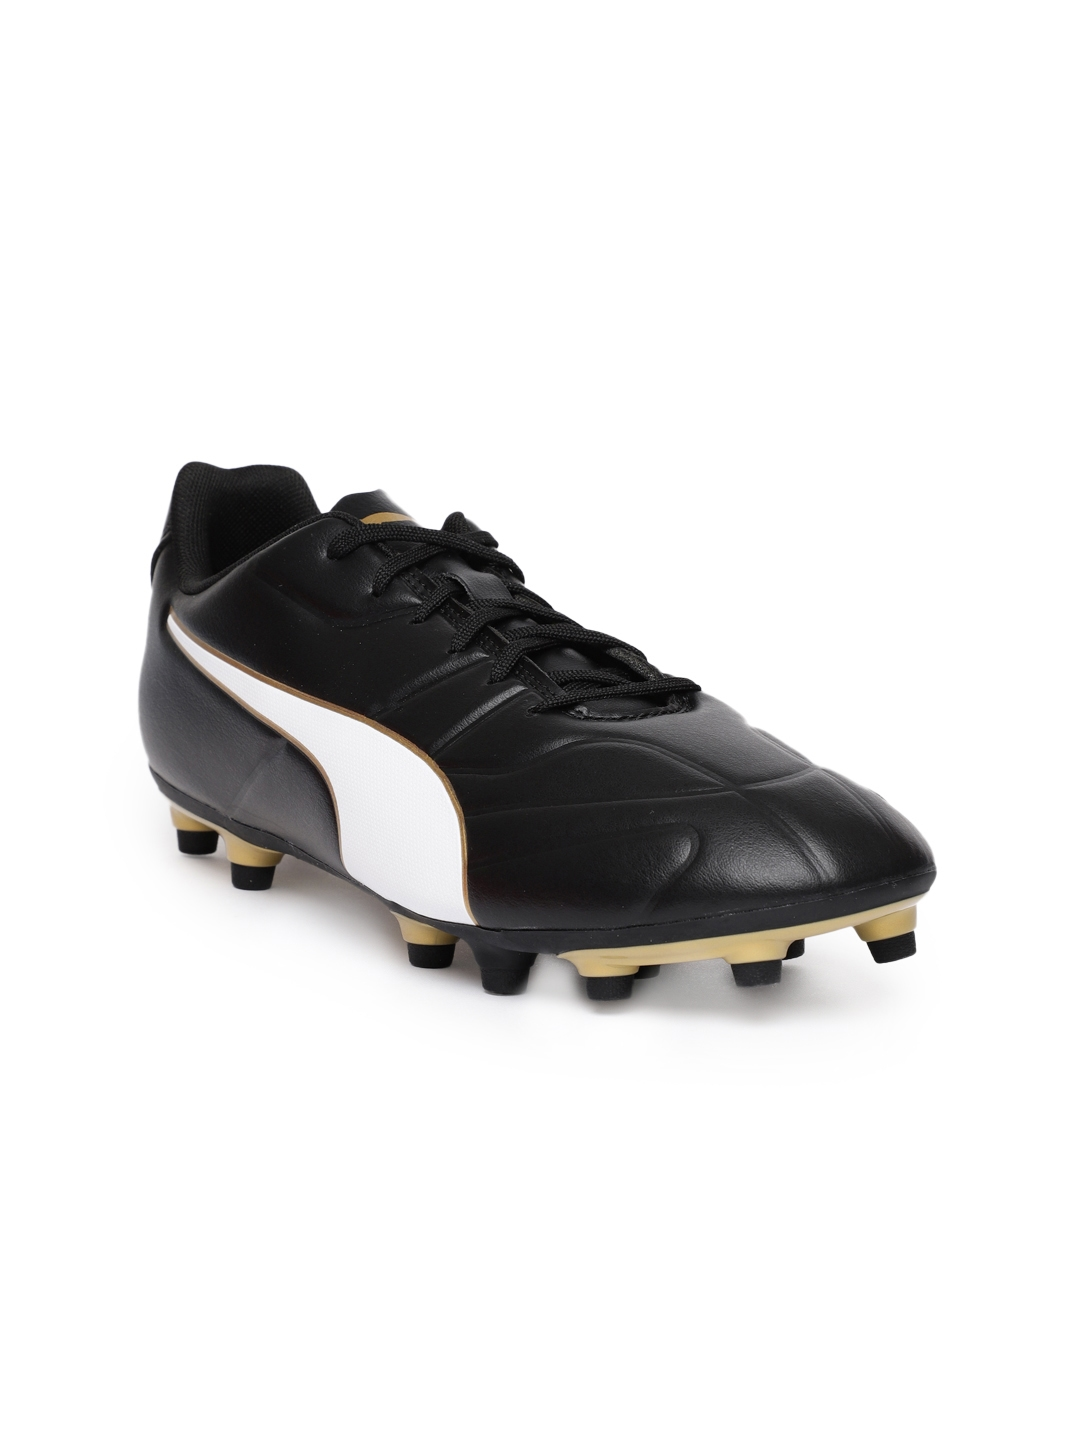 7d2cef395fb Buy Puma Men Black   Gold Toned Classico C II Firm Ground Football ...